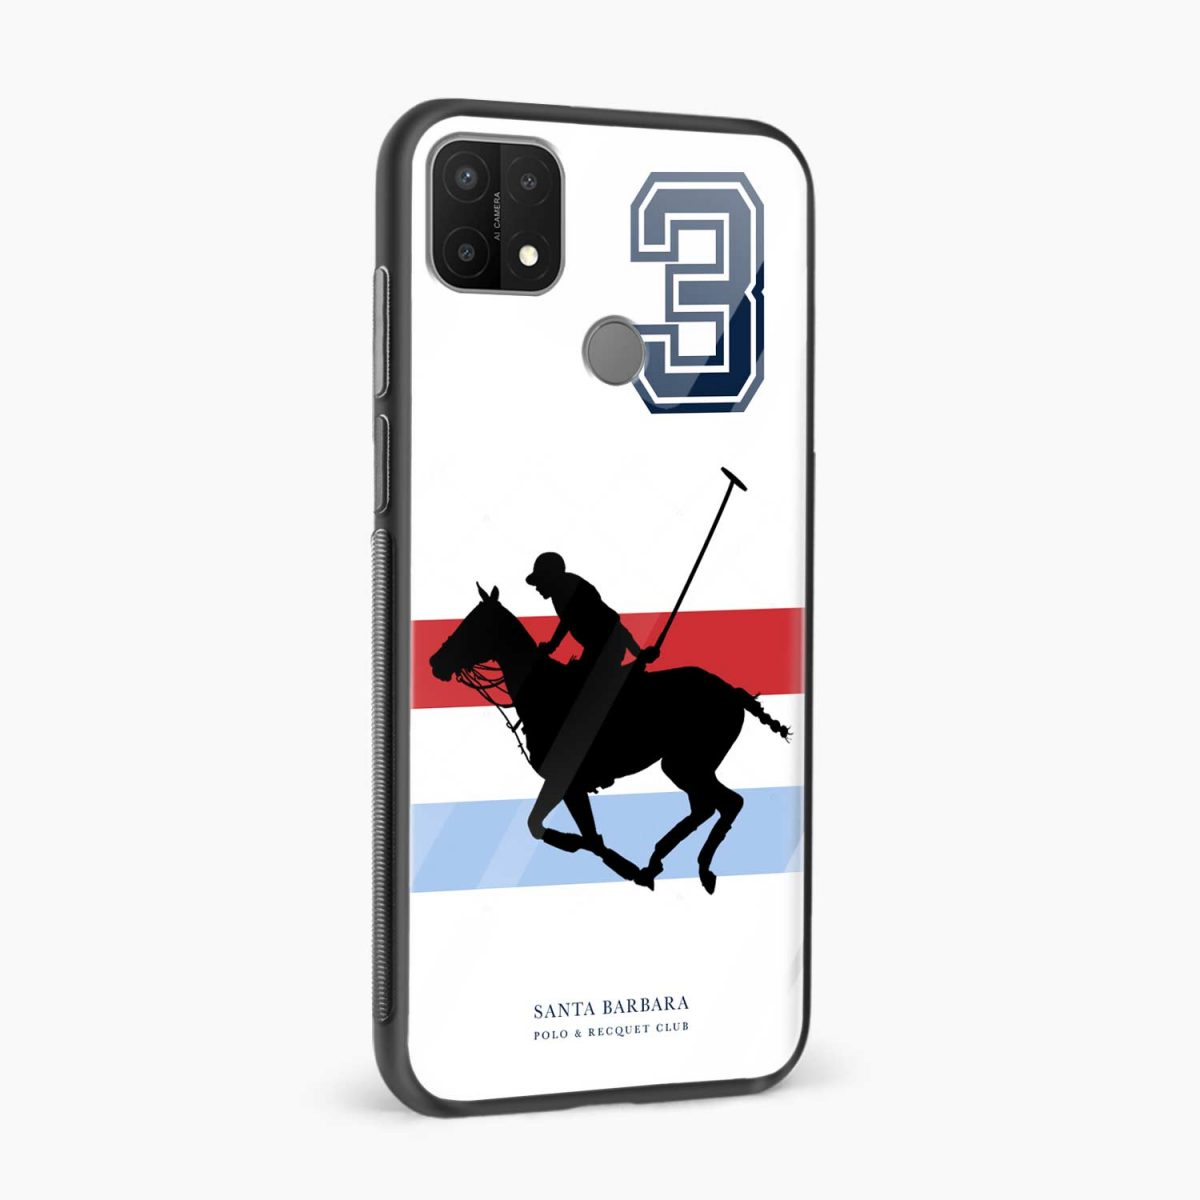 sant barbara polo side view oppo a15 back cover